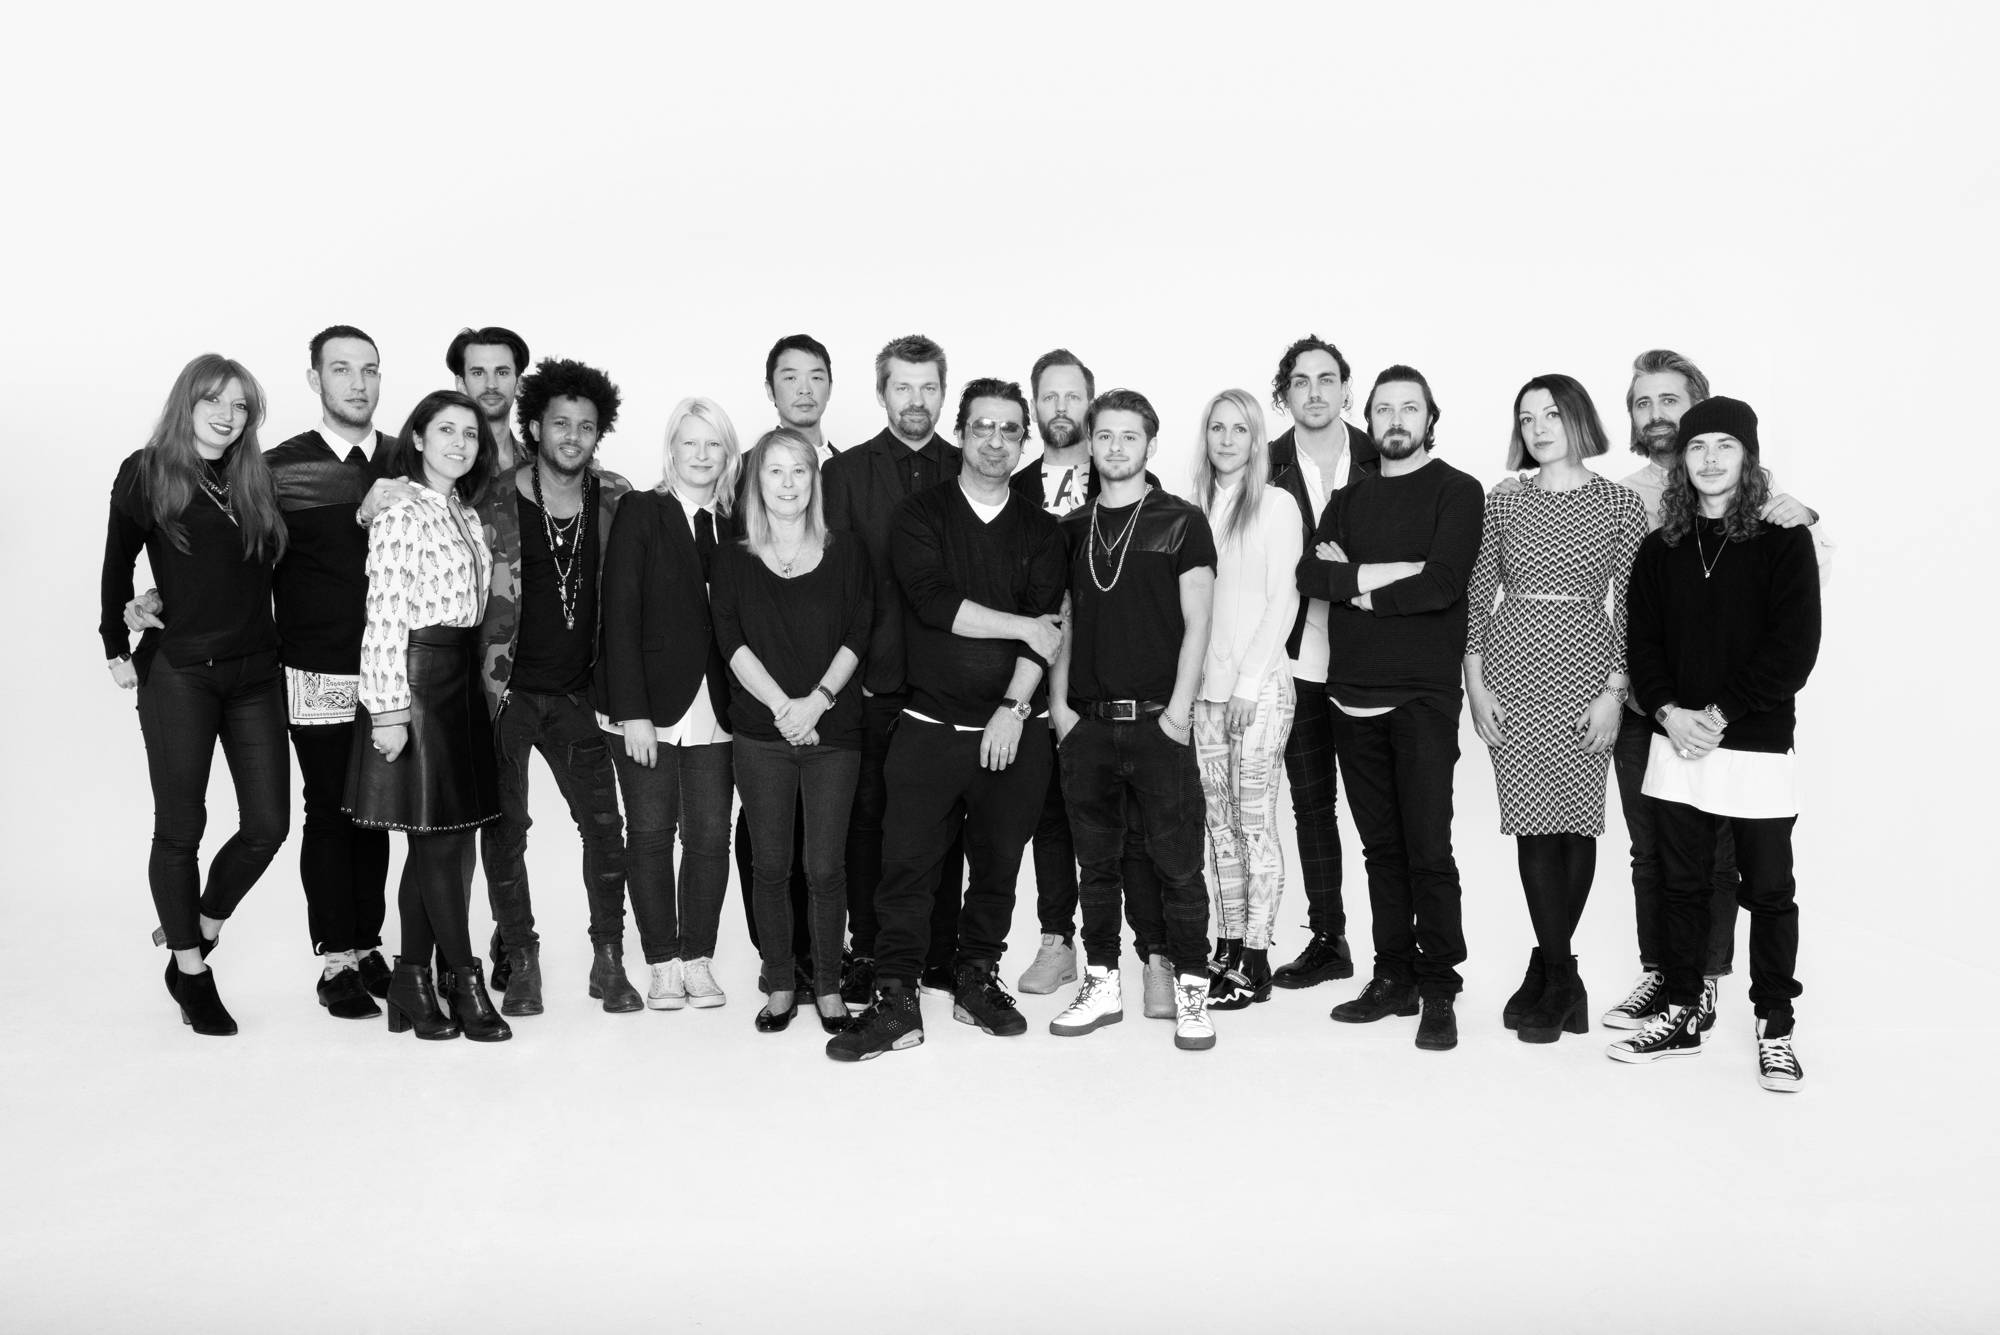 TIGI Artistis from left to right are: Kerrie O'Reilly, Christopher Catanese , Maria Carrubba, Warren Boodaghians (behind),Richy Kandasamy, Maria Kovacs, Gen Itoh (behind), Pat Mascolo, Akos Bodi (behind), Anthony Mascolo, Thomas Osborn, Joshua Mascolo, Christel Lundqvist, Philip downing (behind), Marco Iafrate, Renee Valerie, Piero Gentile (behind), John Harte.